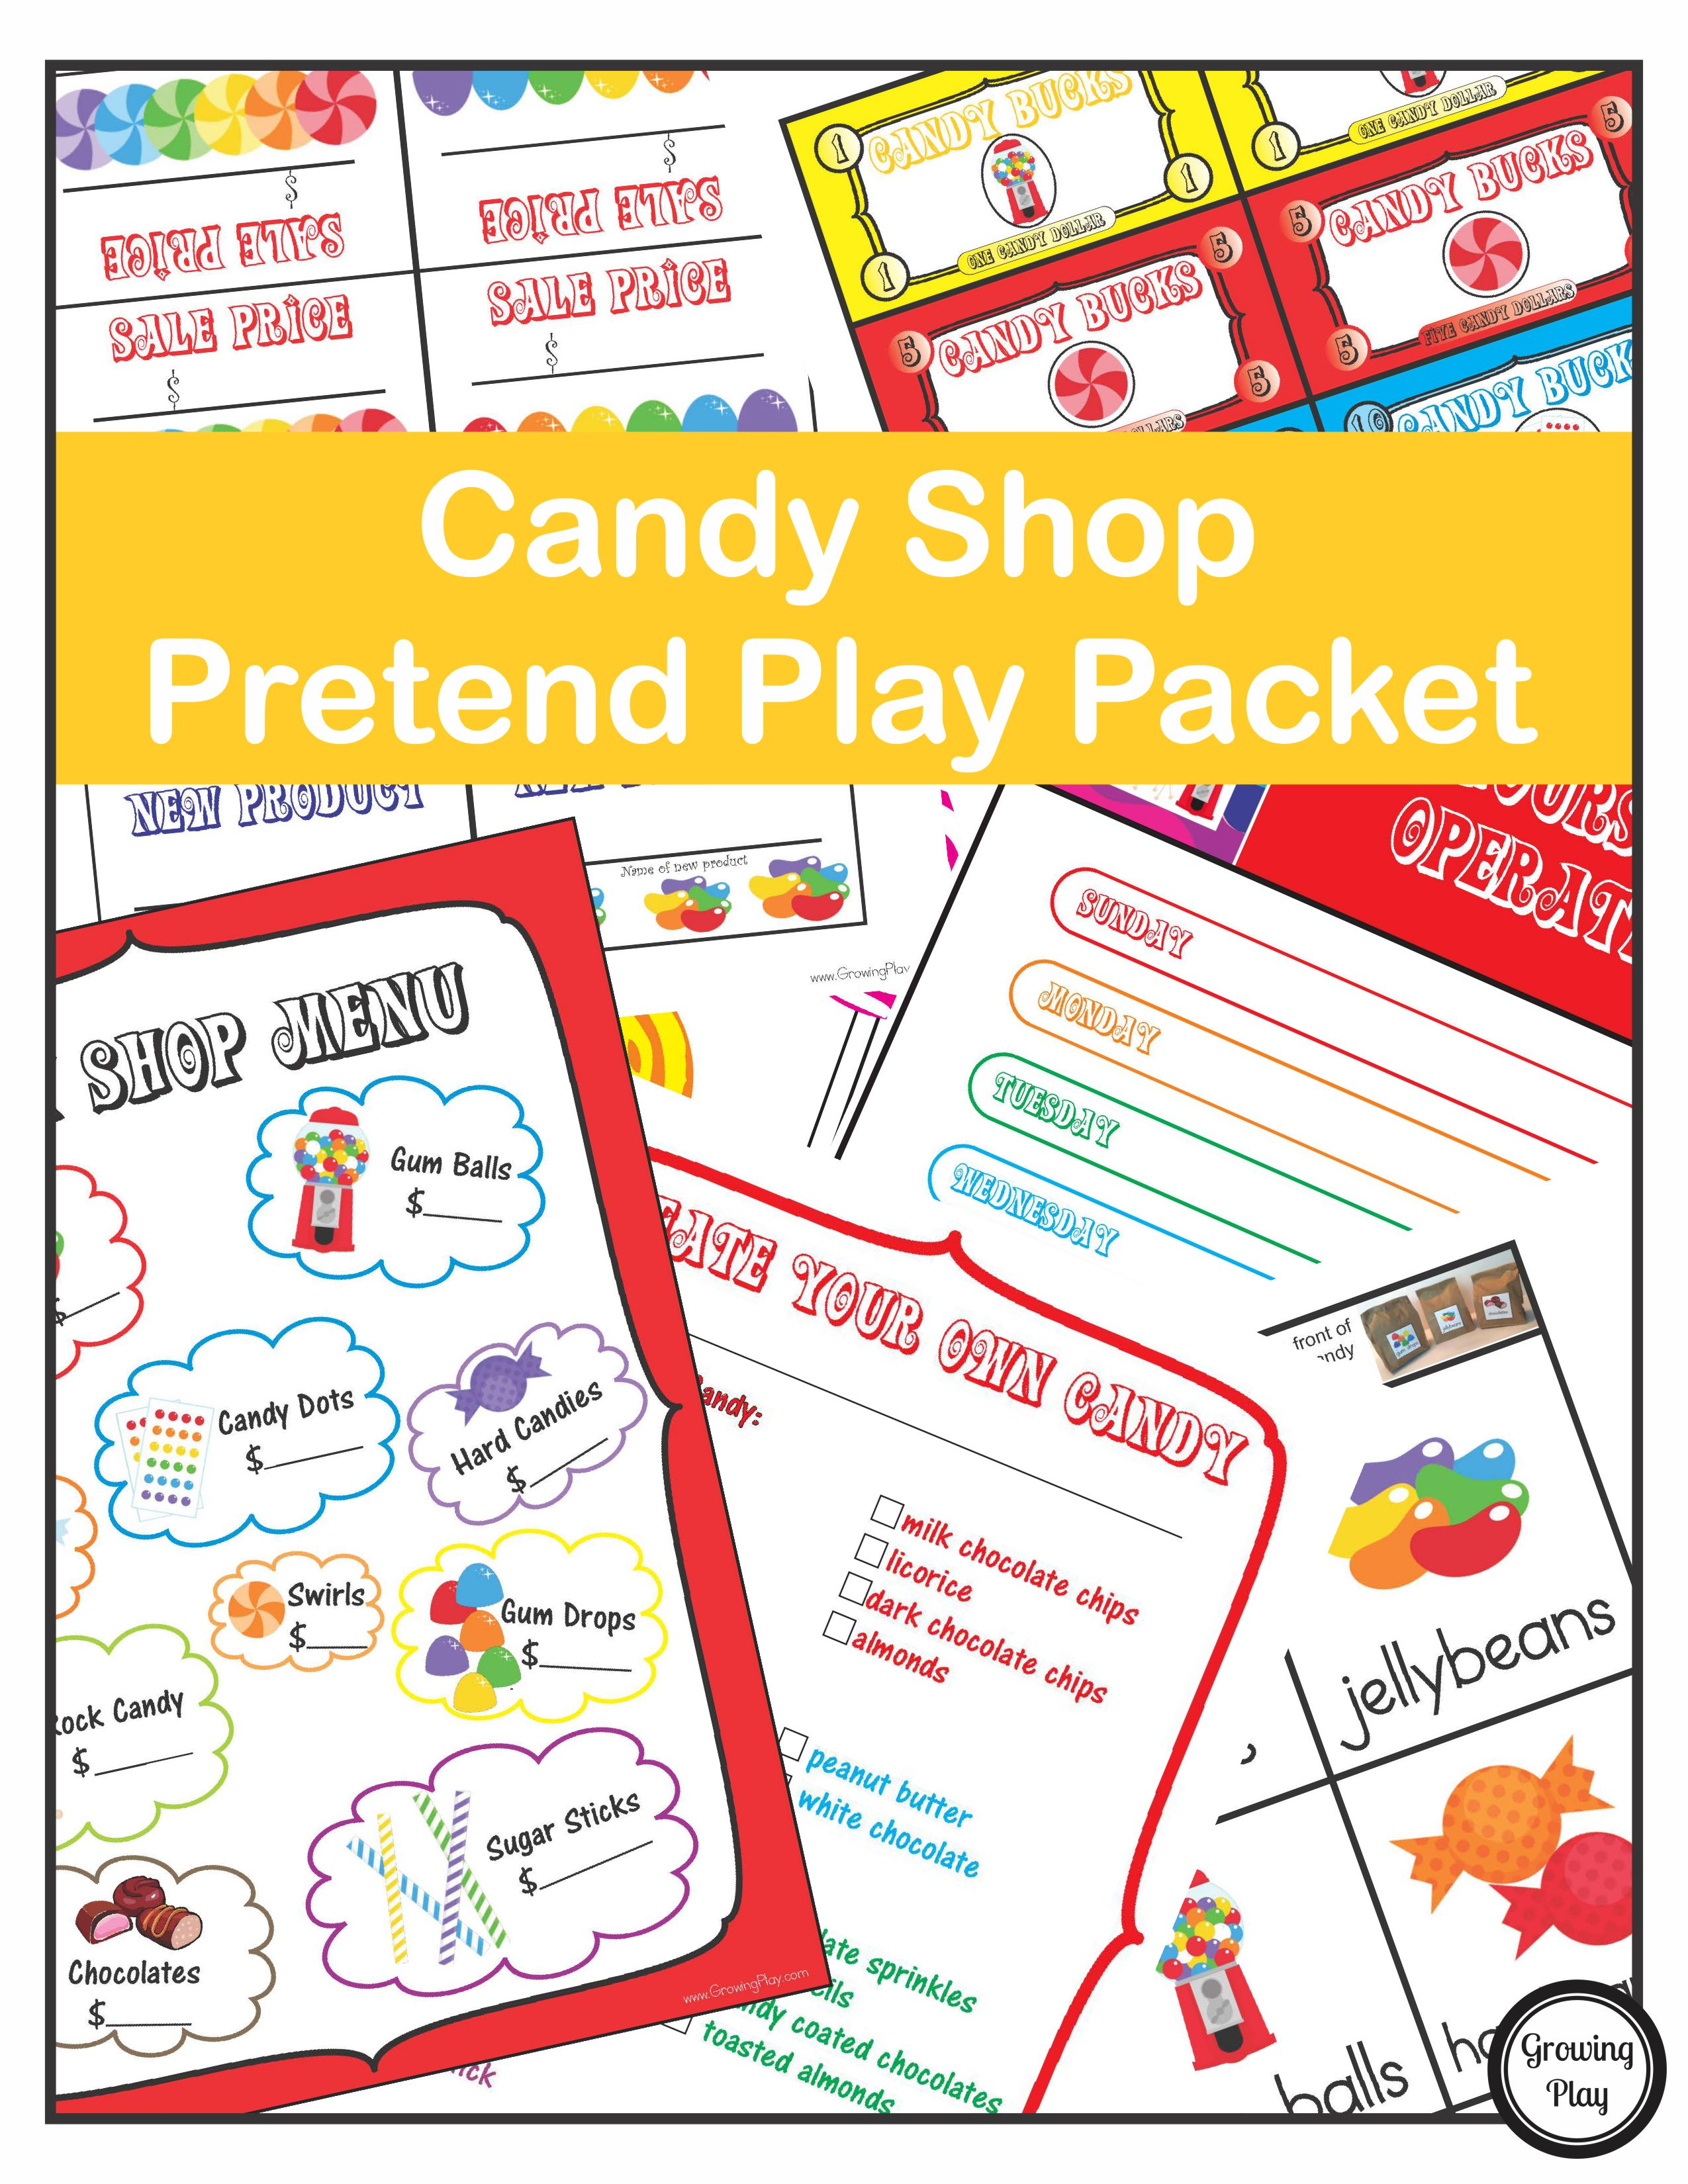 Candy Shop Pretend Play